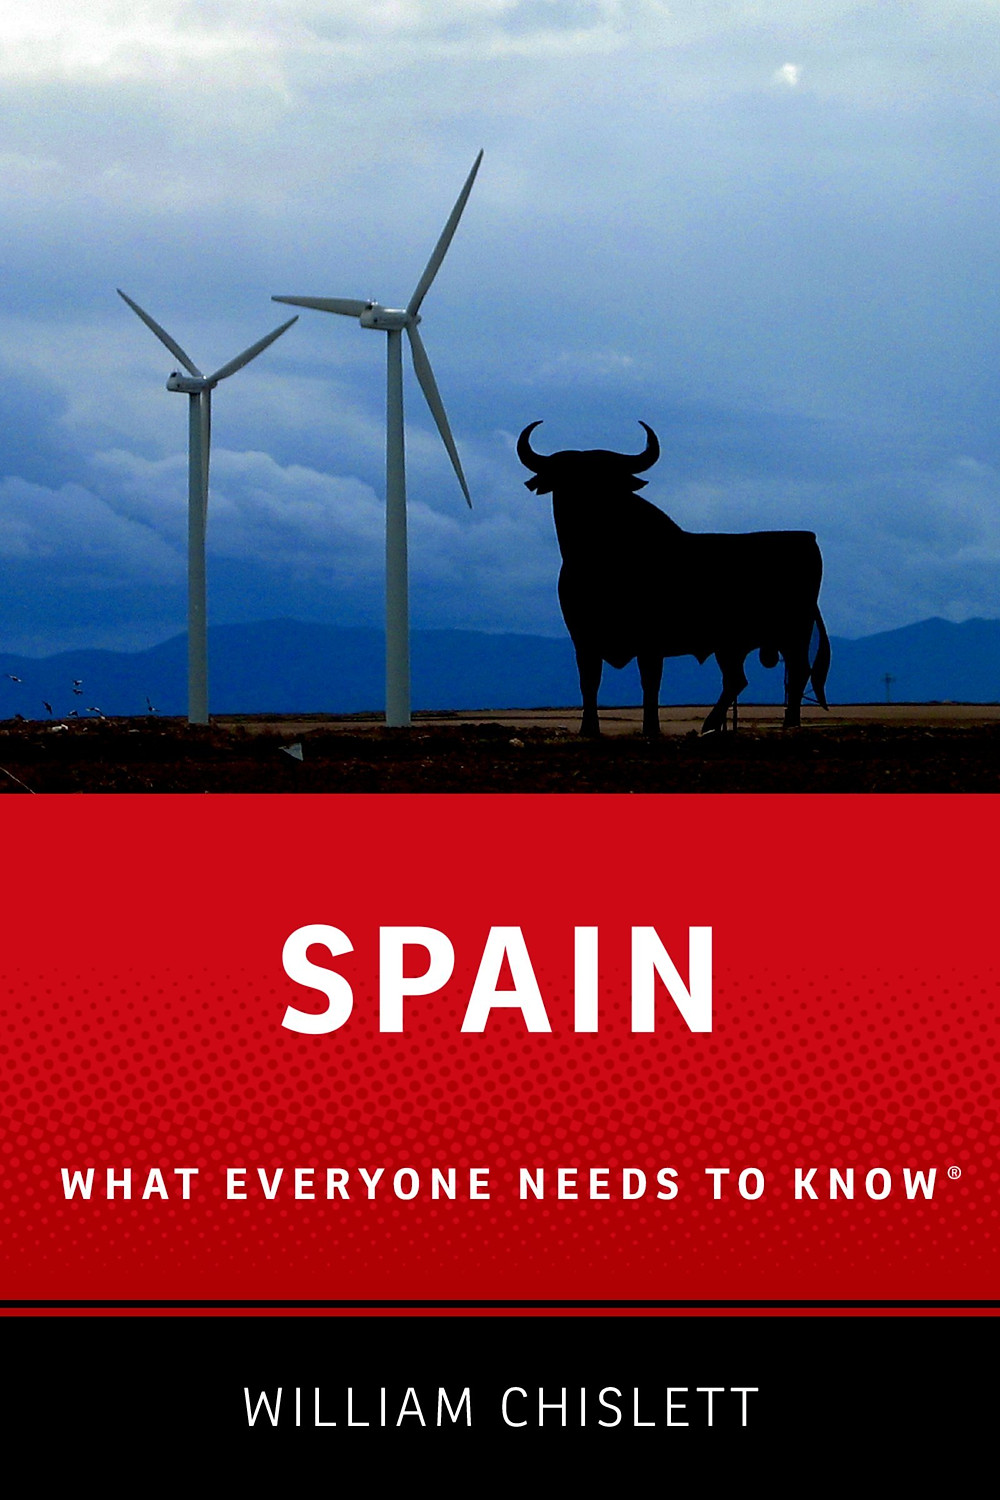 Spain - What Everyone Needs to Know by William Chislett